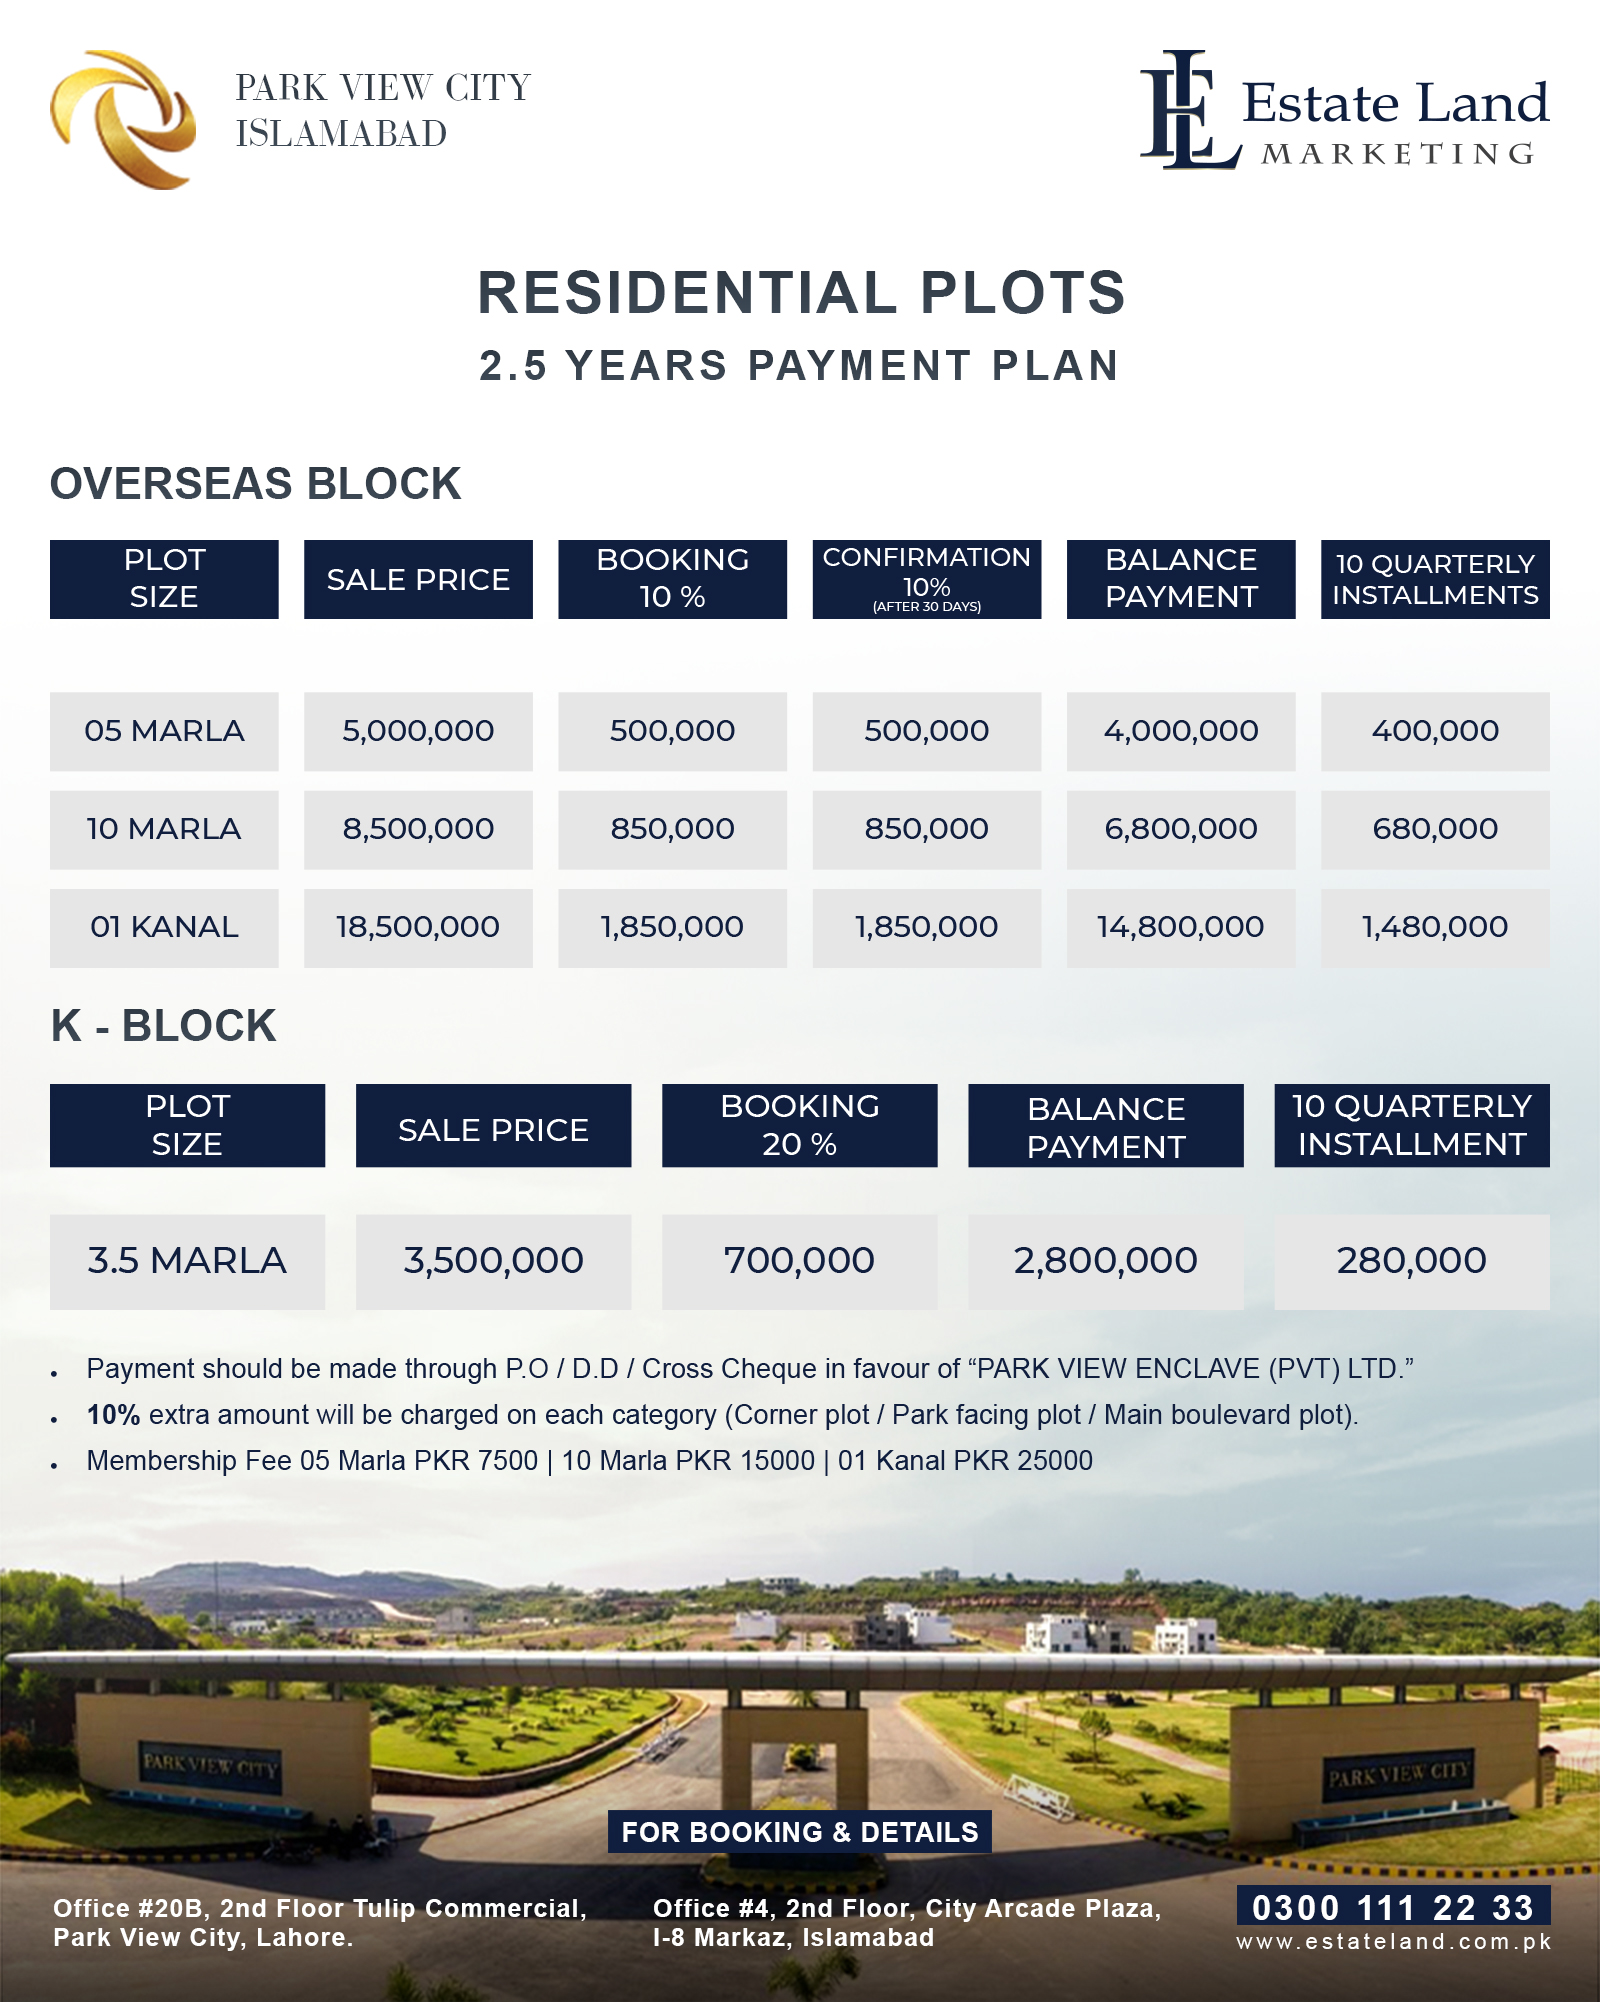 overseas block and k block payment plan of park view city Islamabad